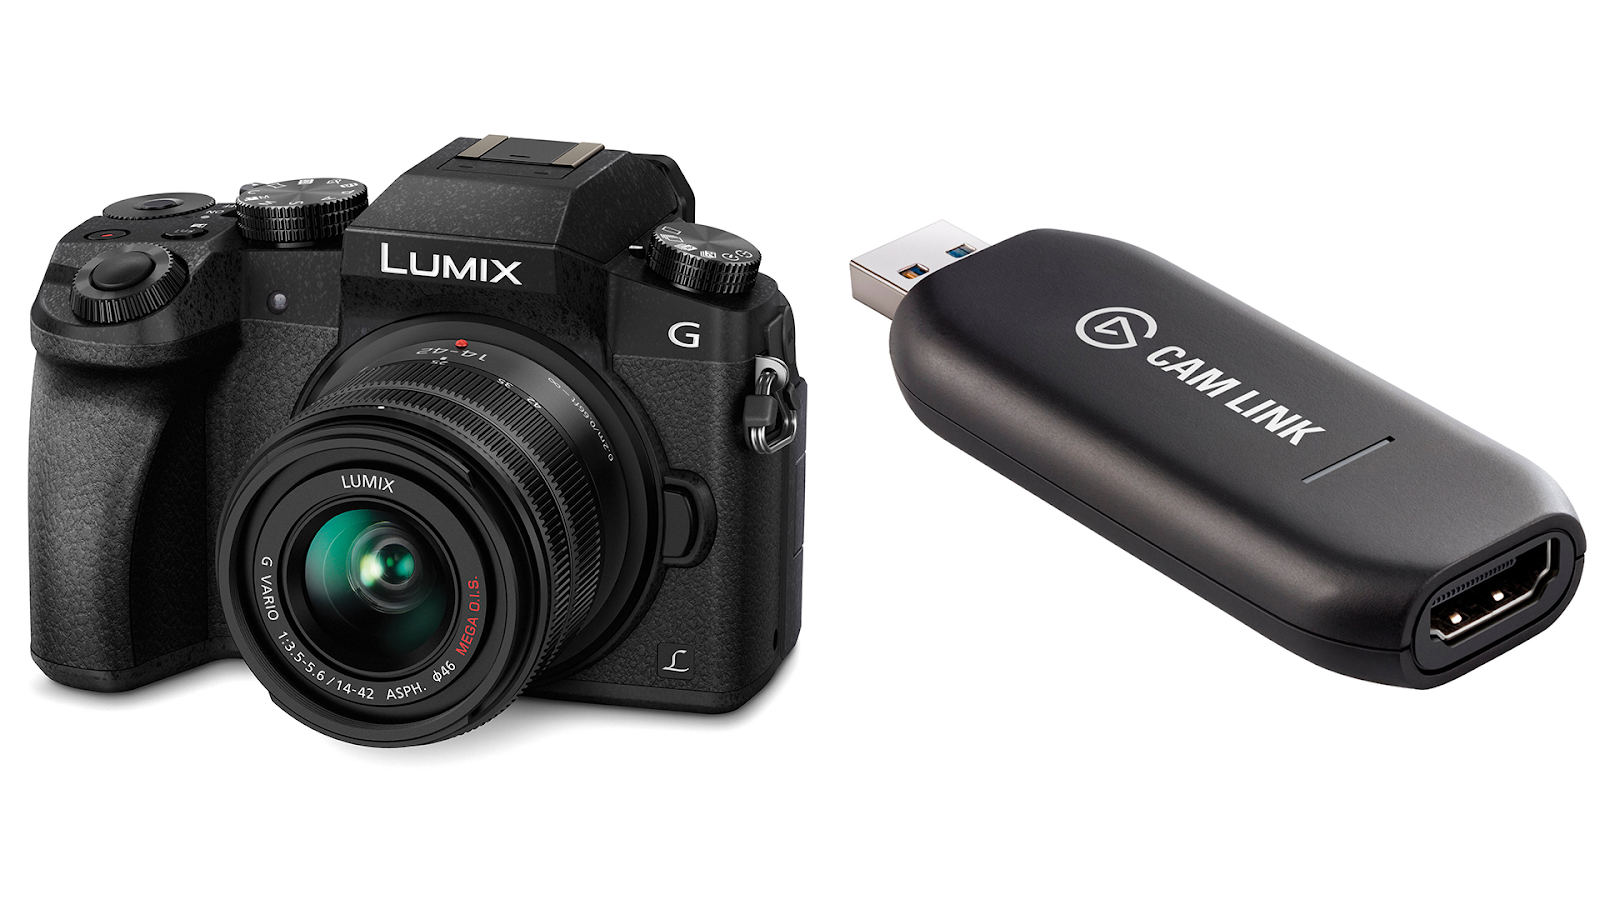 A digital video camera, the Panasonic Lumix G7, set alongside the Elgato Cam Link 4K, which looks like a small black USB dongle, set together against a white background. Used together these give you quality video for remote working